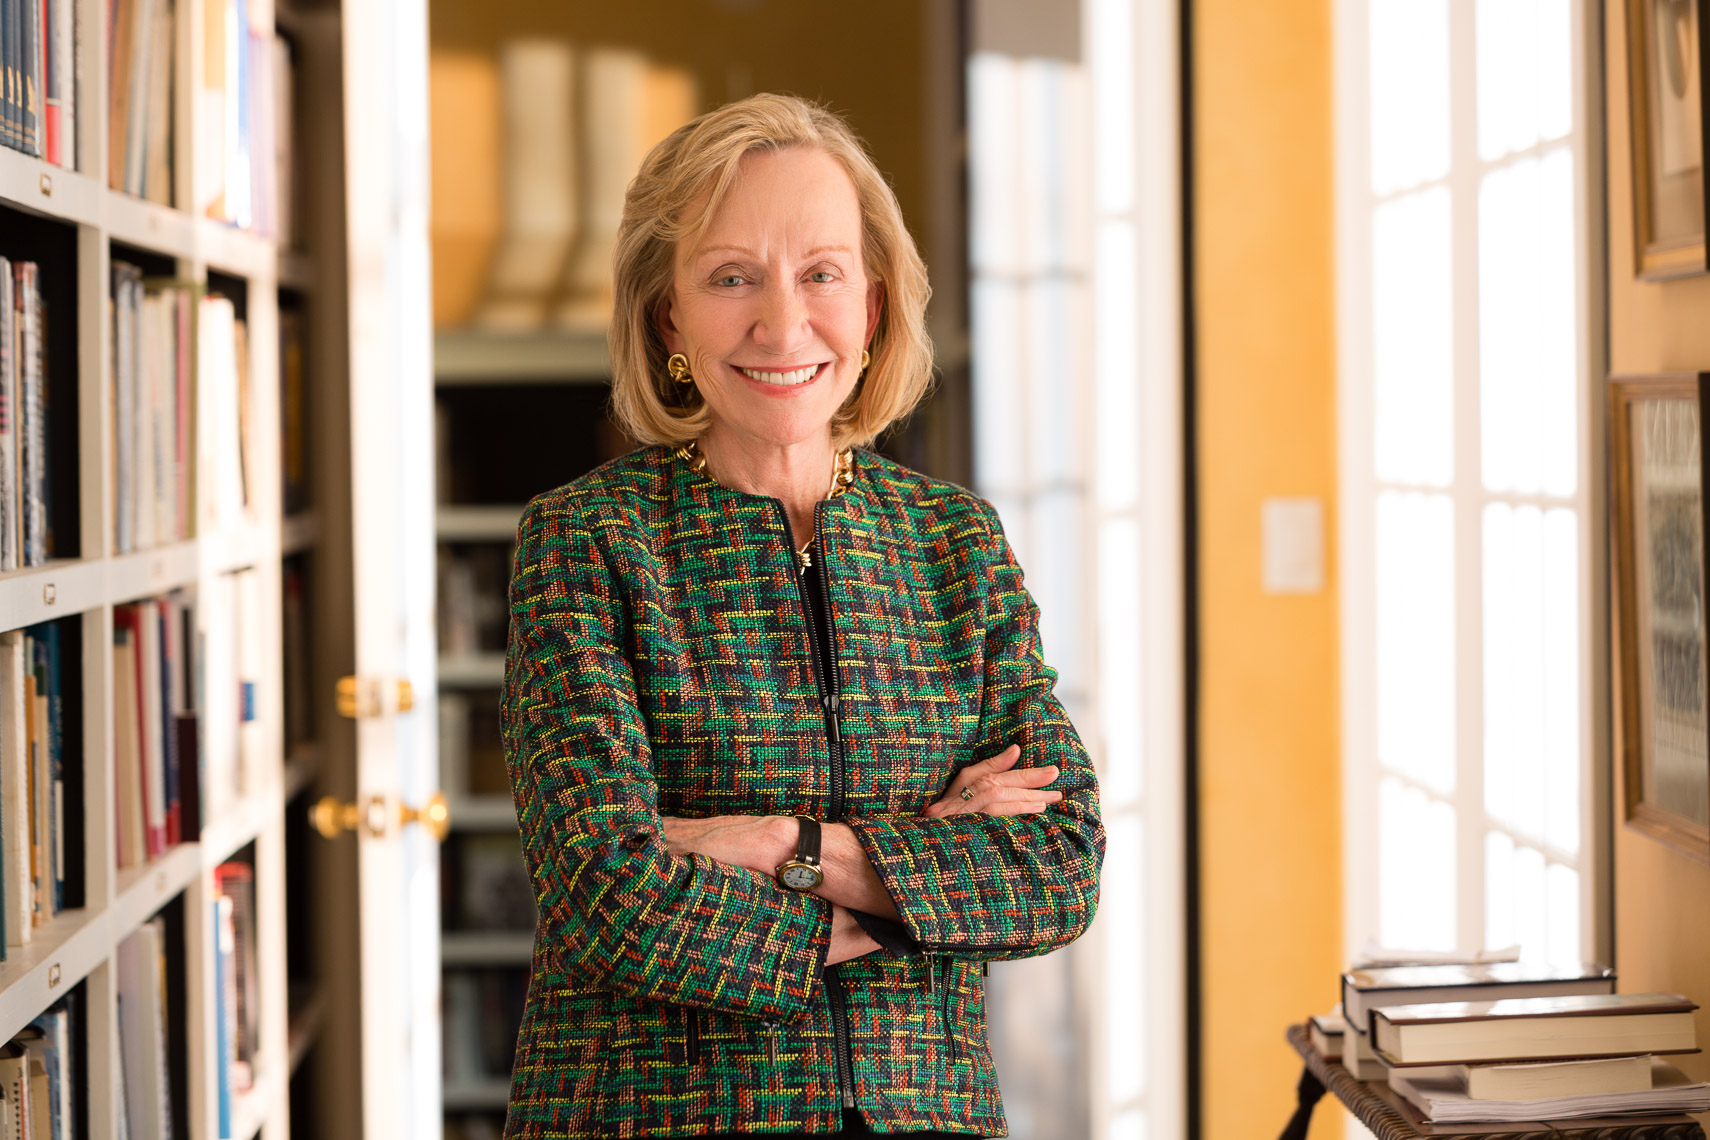 DORIS KEARNS GOODWIN • PRESIDENTIAL HISTORIAN • JASON GROW PHOTOGRAPHY